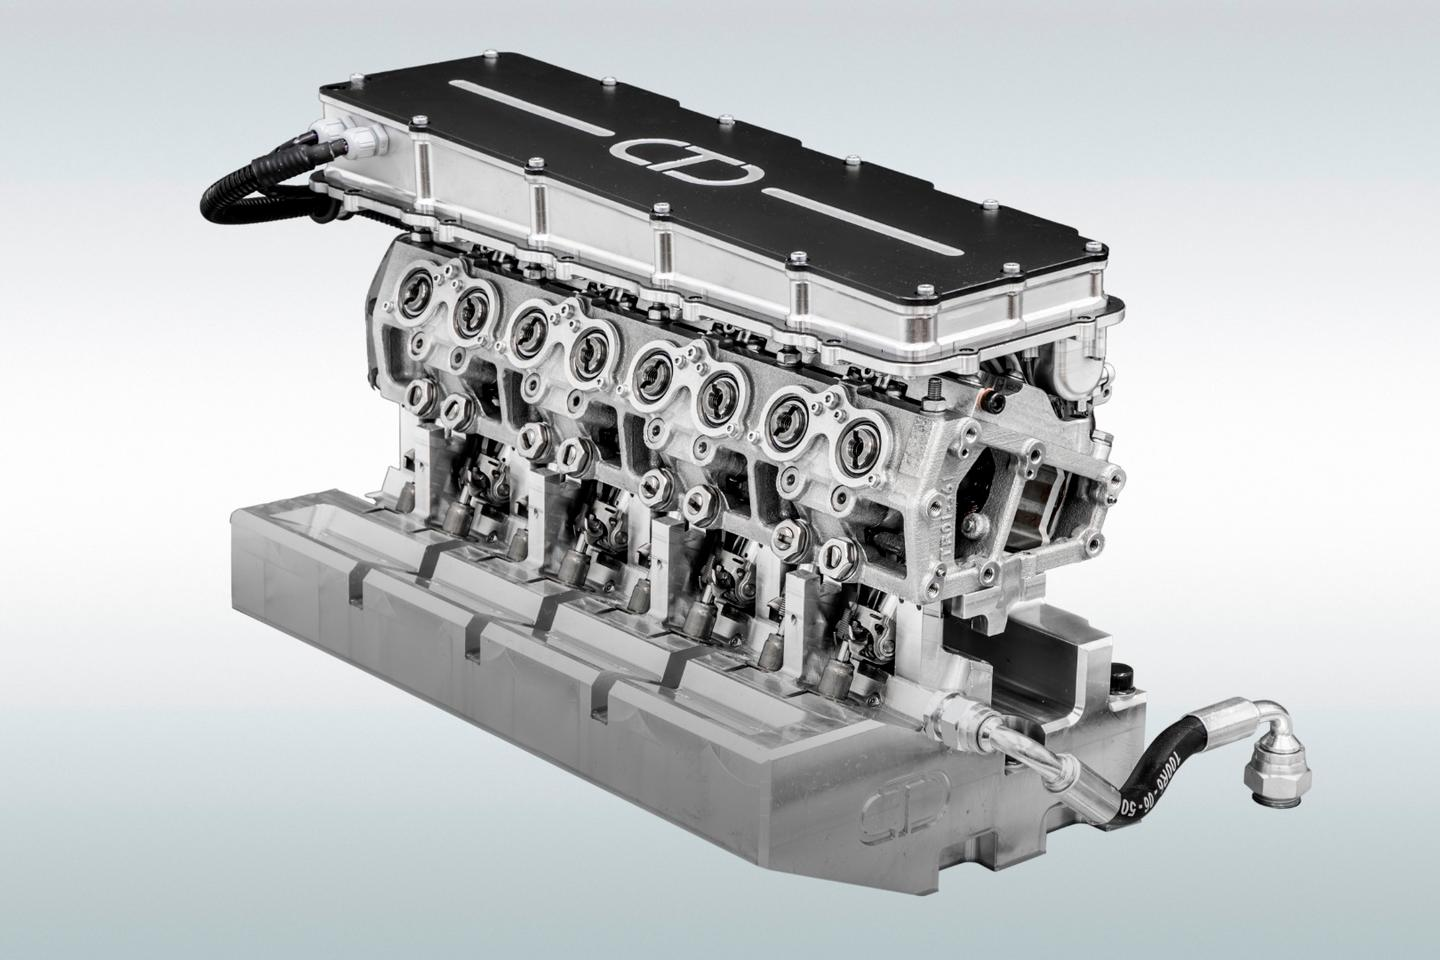 World's first fully digital valves open up engine possibilities